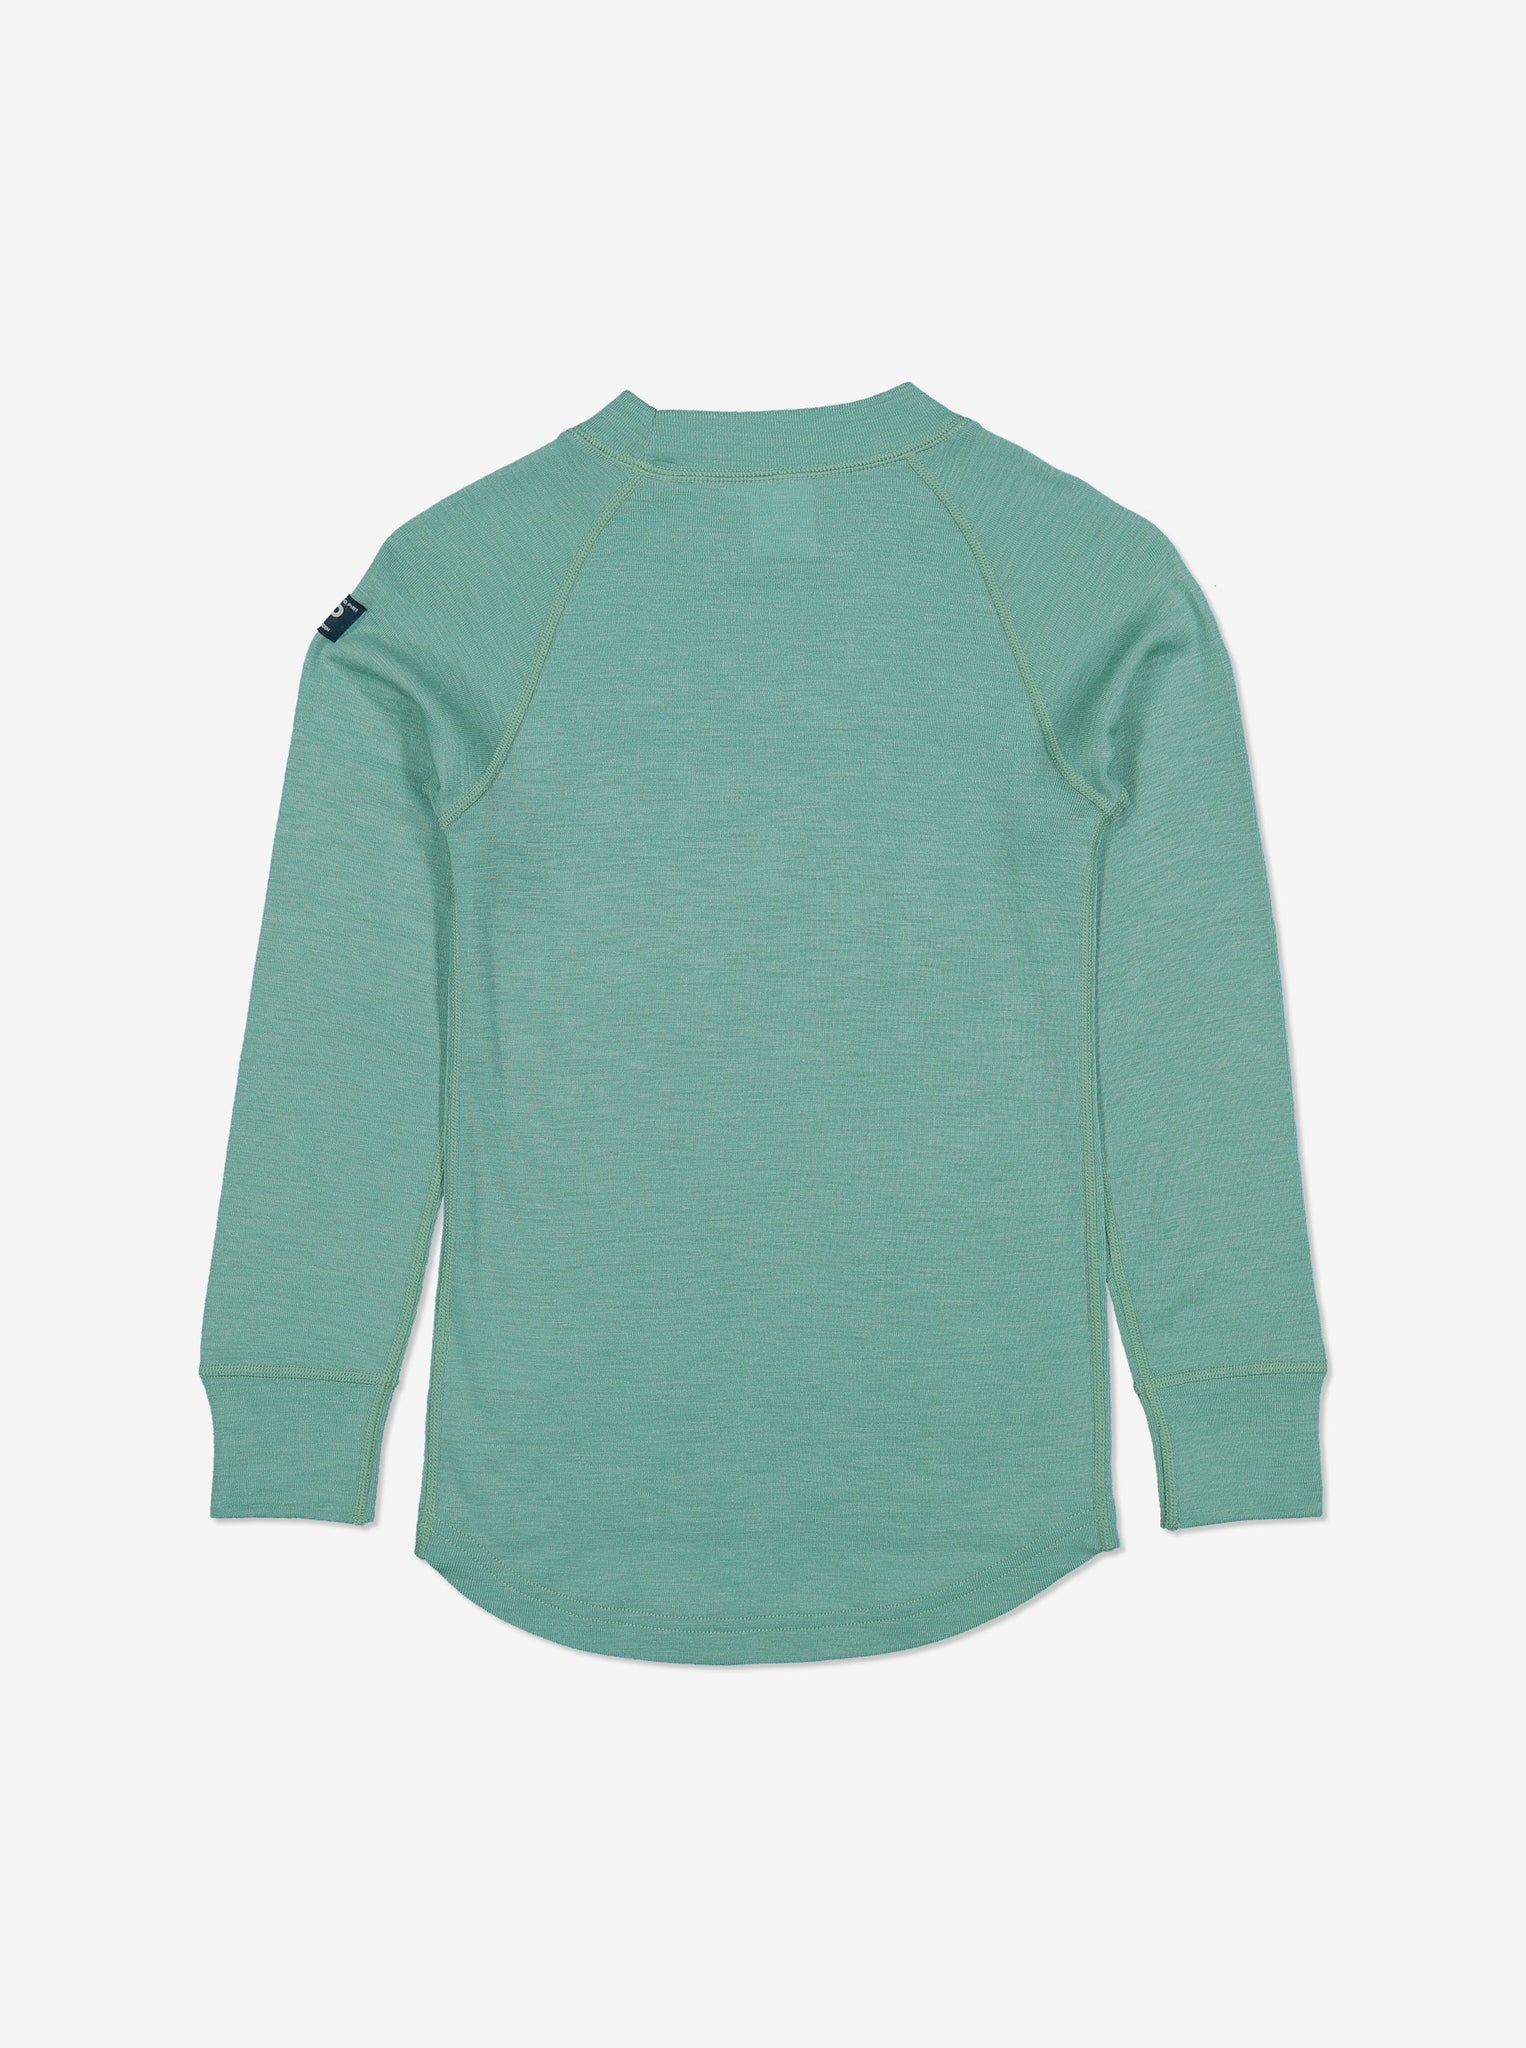 Thermal Merino Kids Top-6m-12y-Blue-Boy